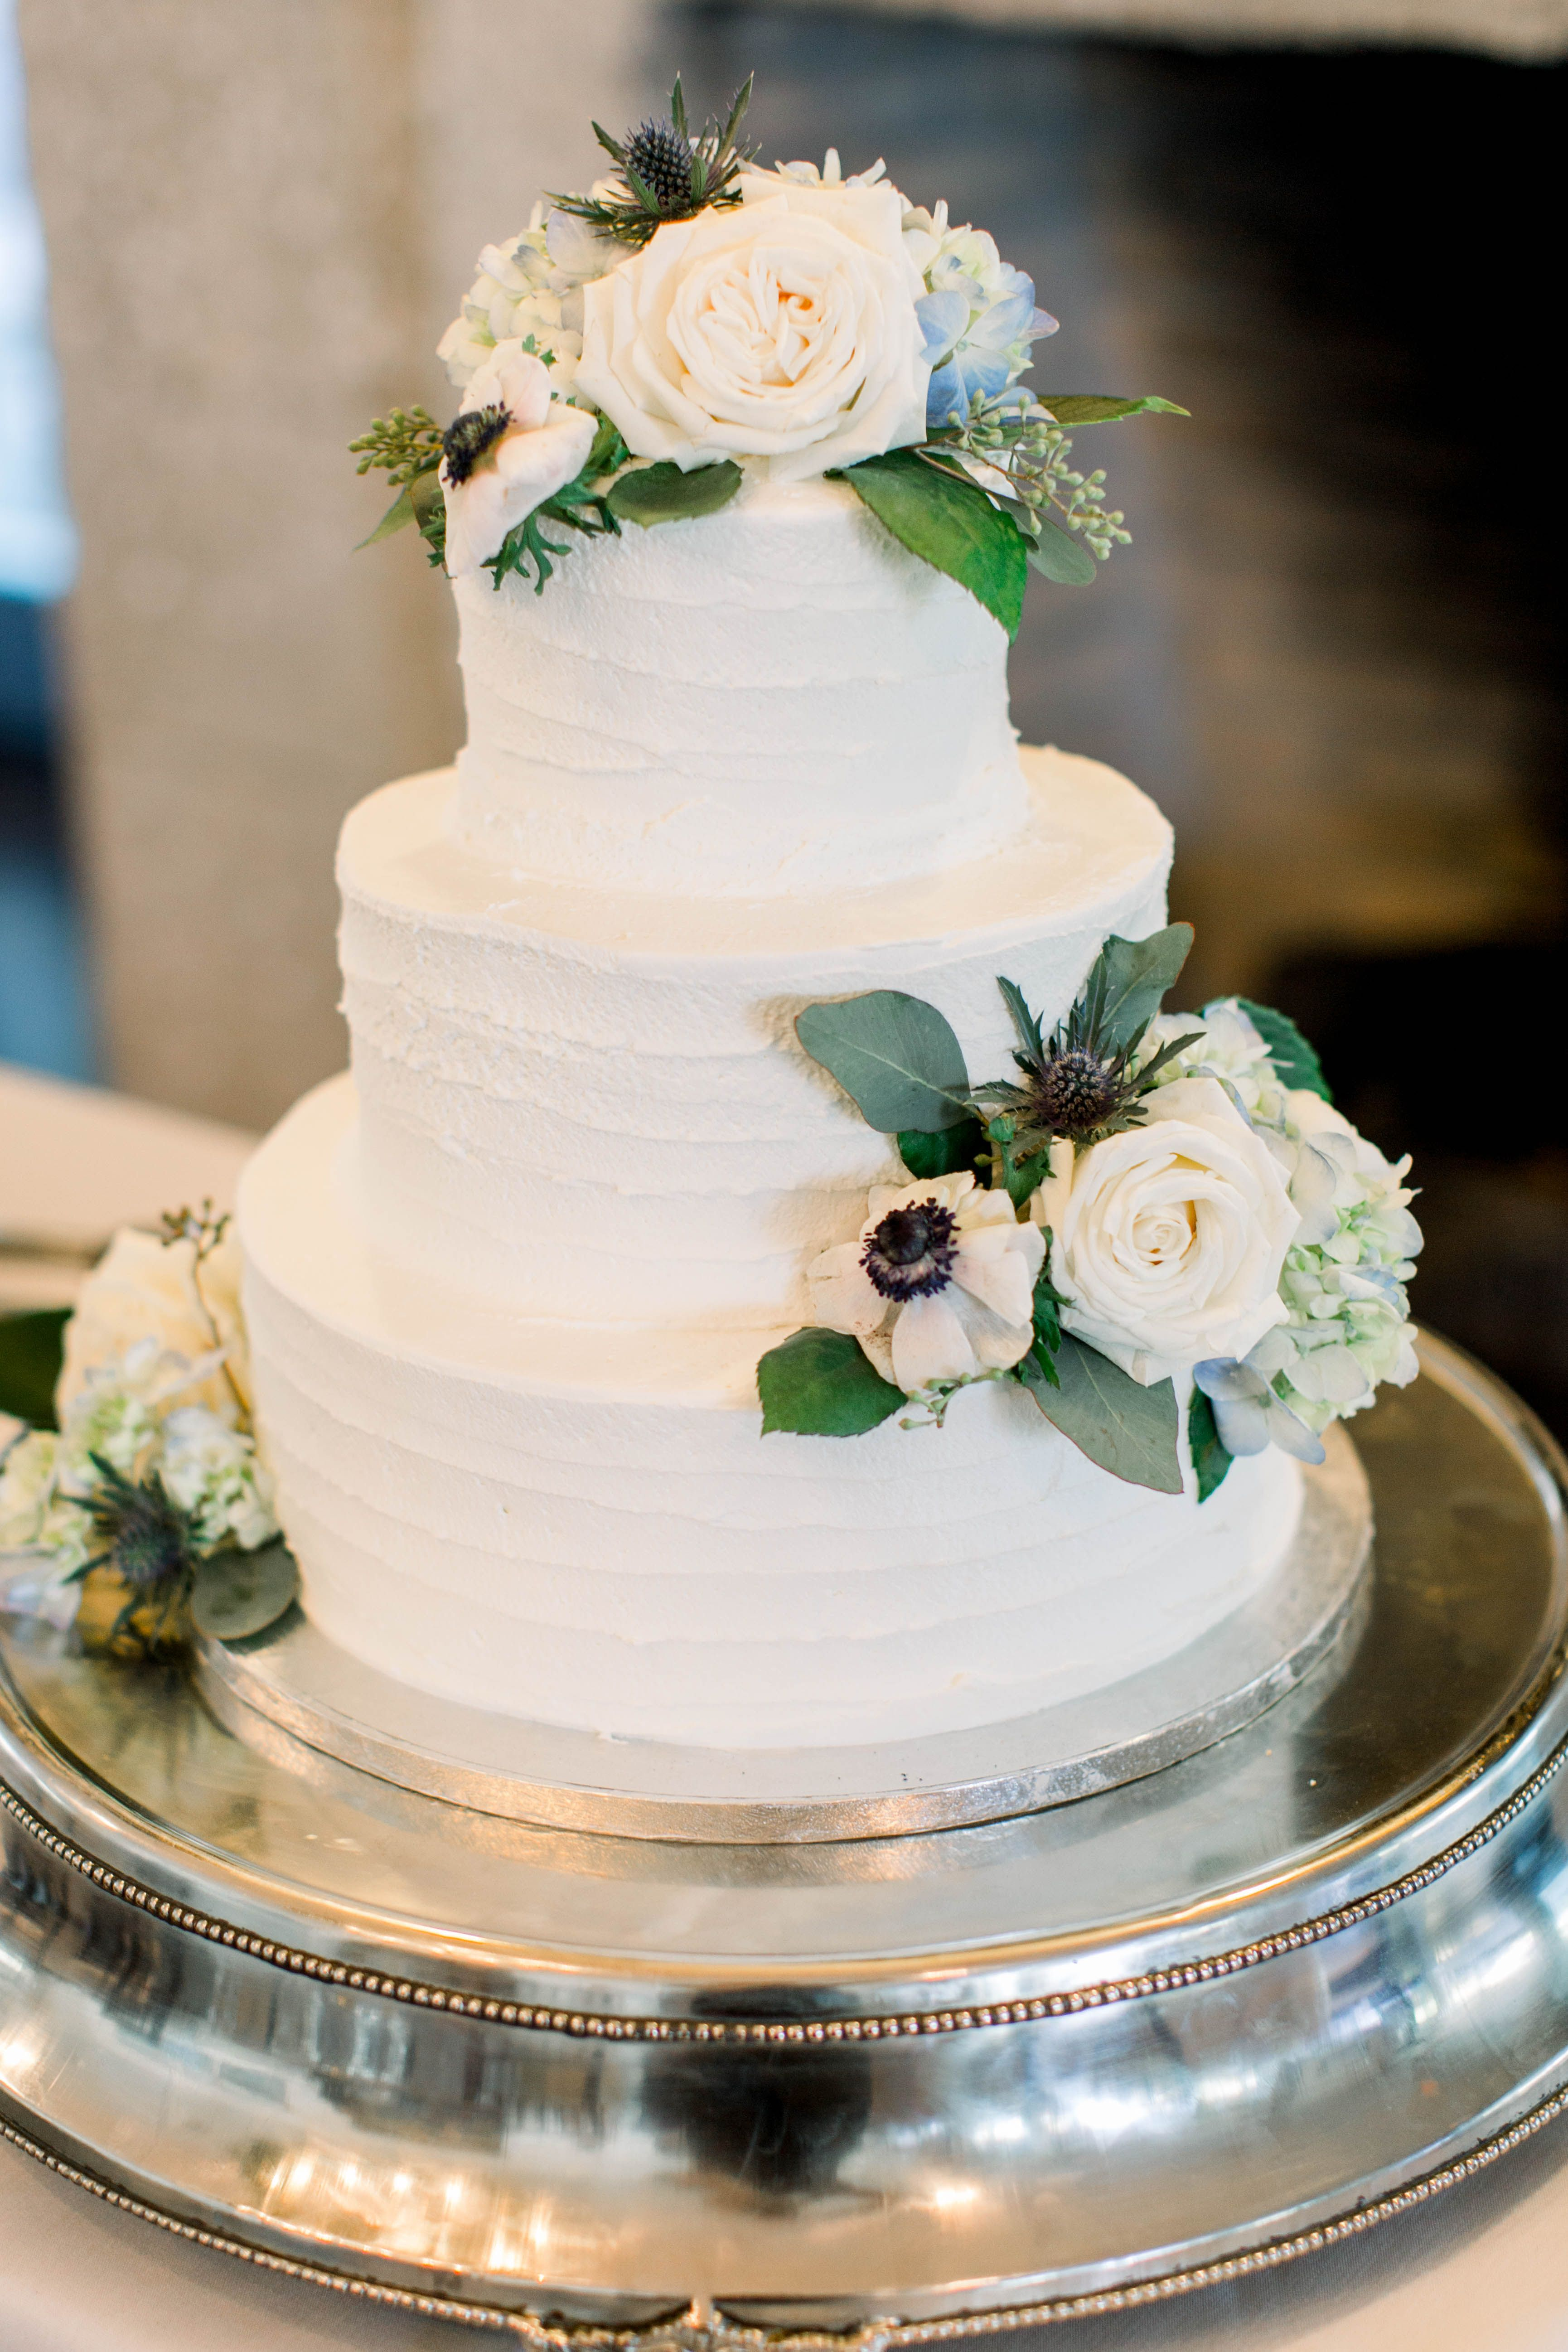 Buttercream Cake Wedding Cakes With Flowers Boho Wedding Cake Beach Wedding Cake